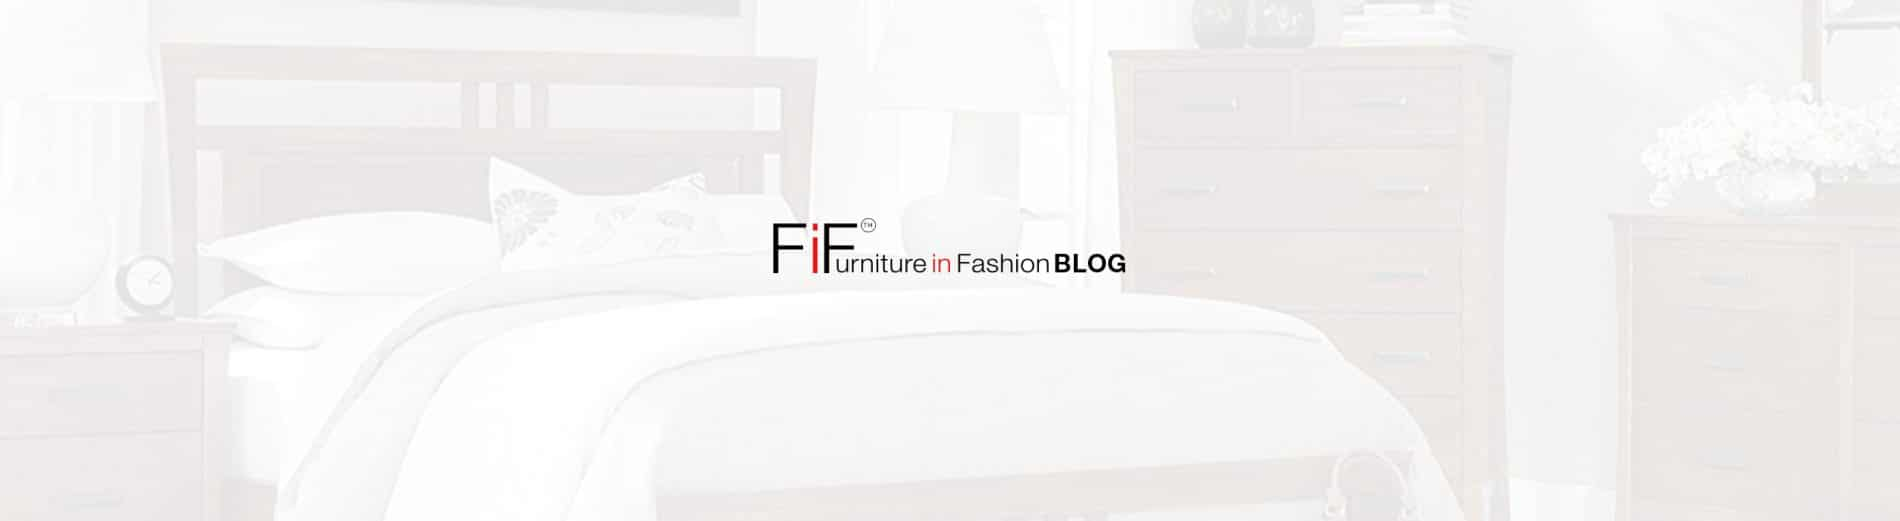 FIF Blog H 1900x521 - What Do We Know About Furniture? Rethinking Design through Building